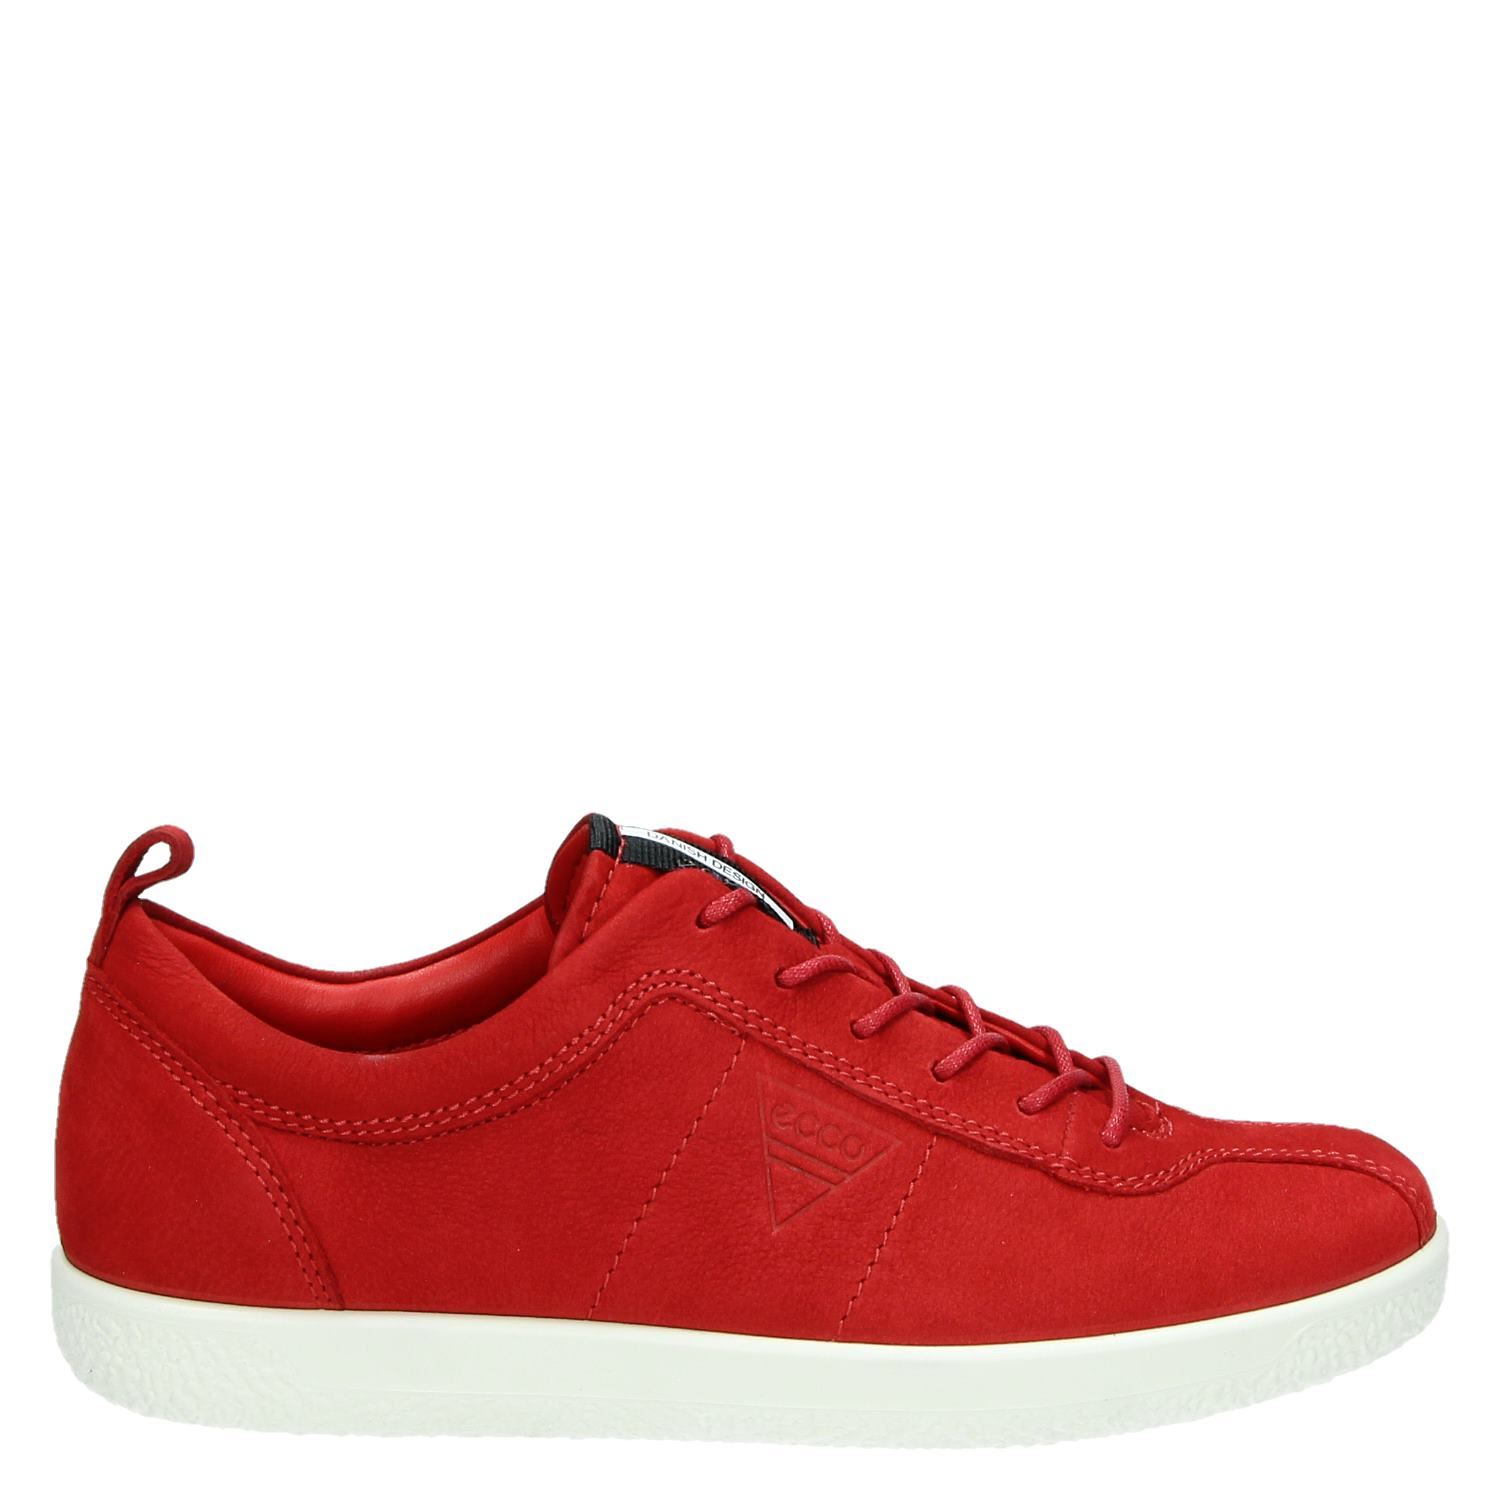 Ecco Soft Dames Sneakers Lage 1 Rood CdxtsQrh